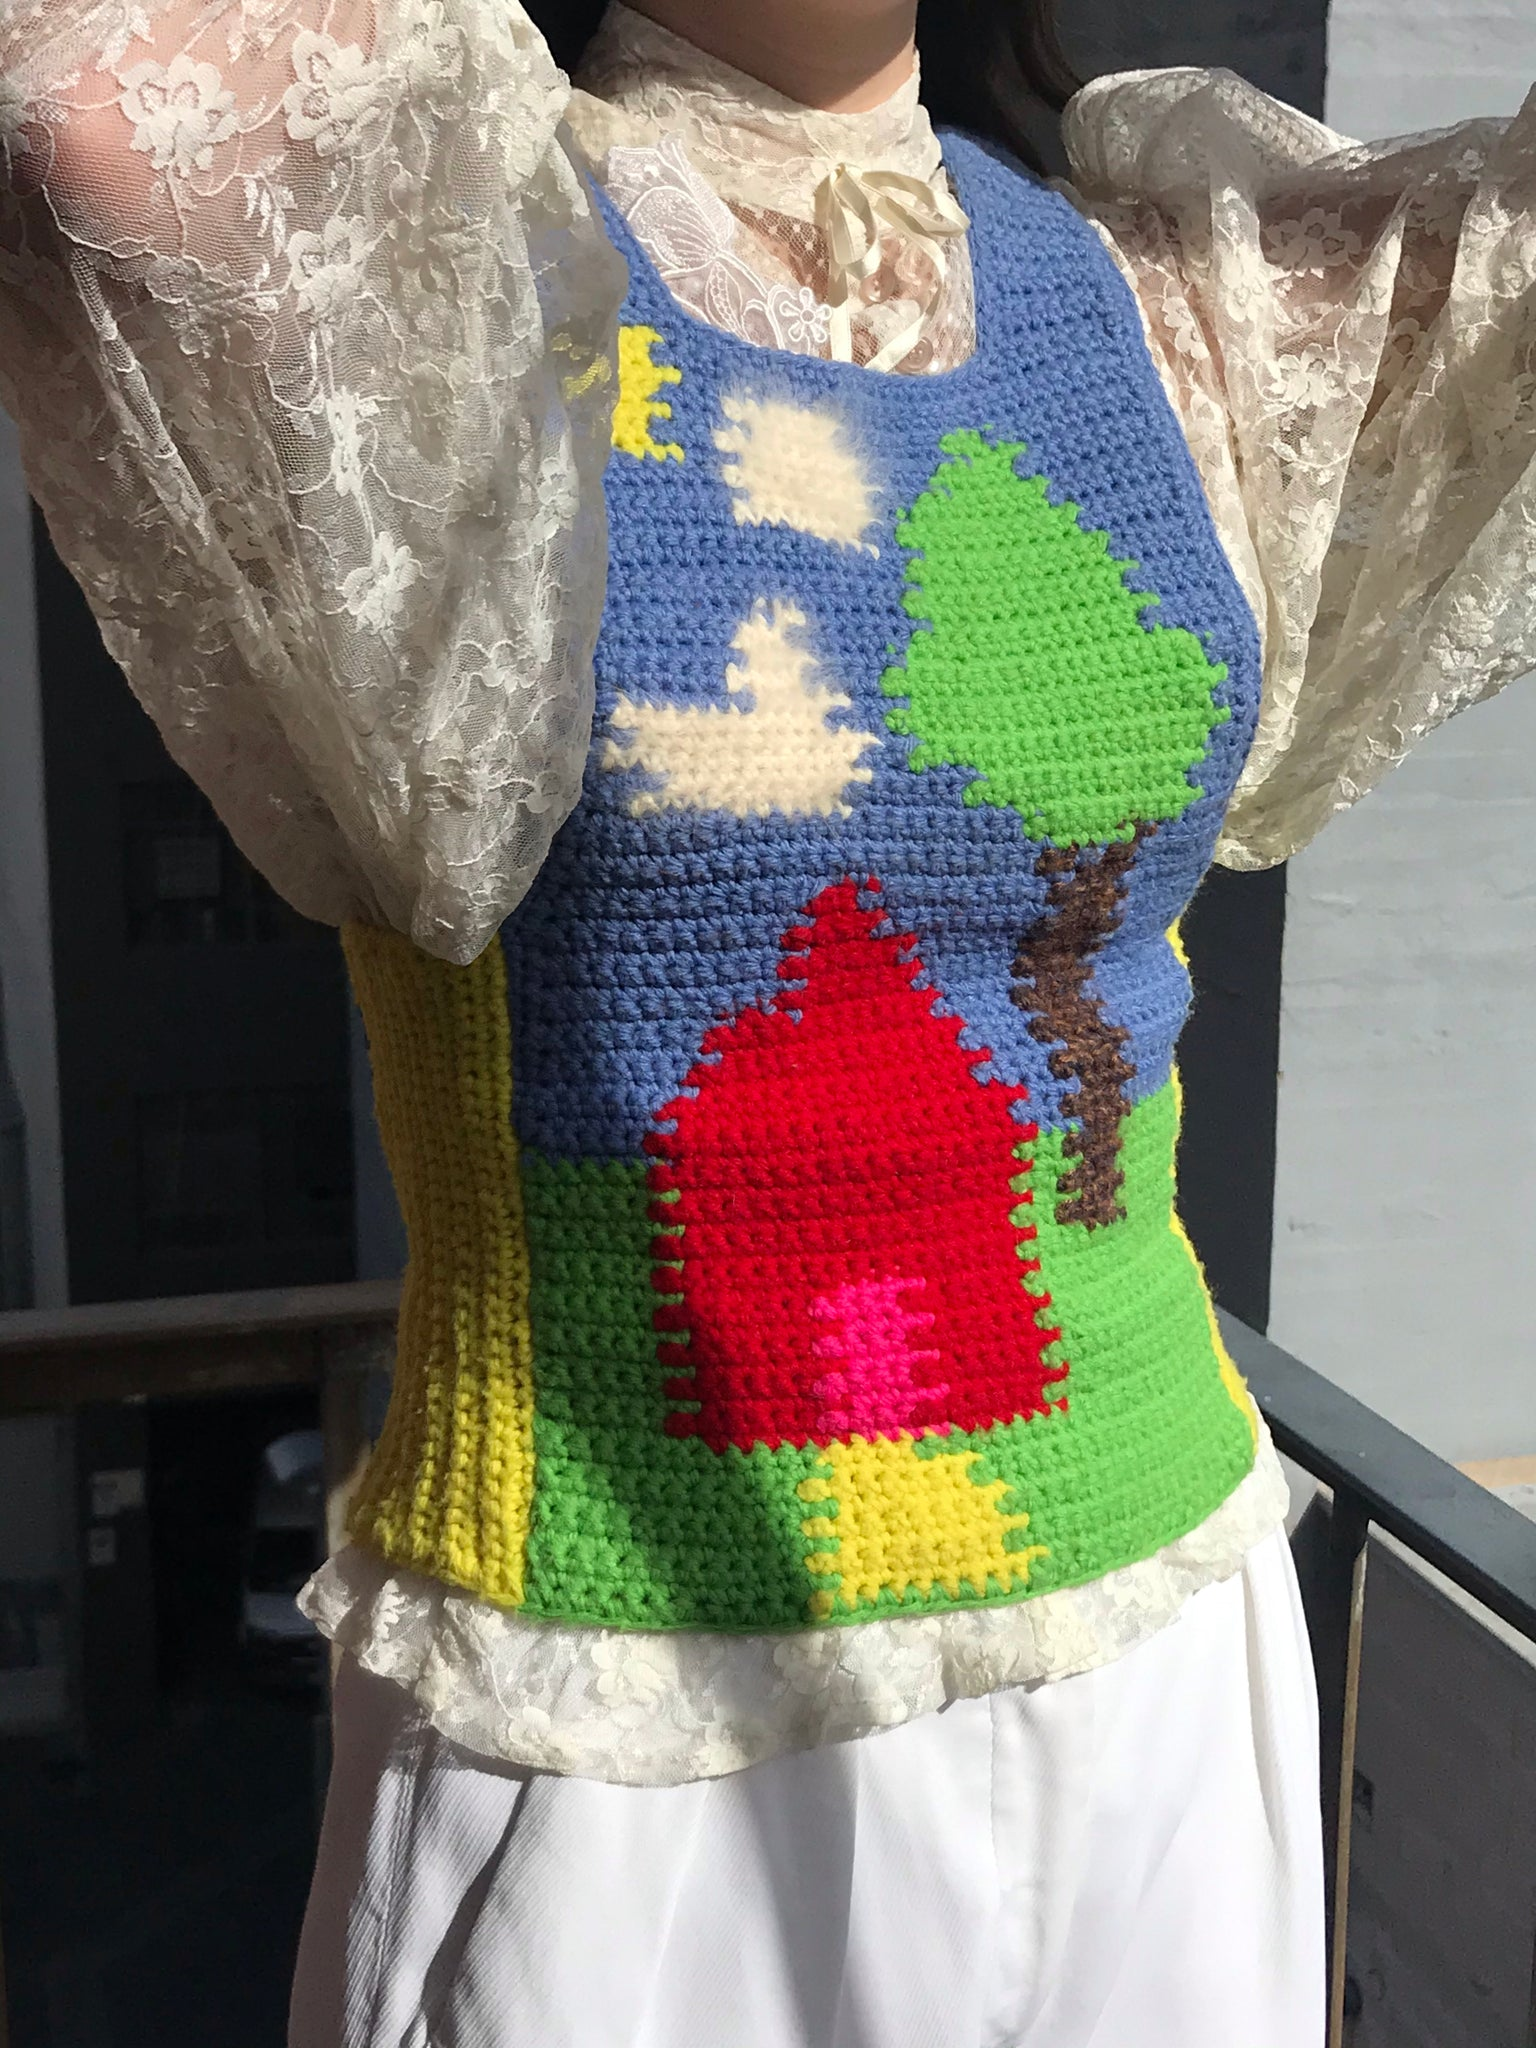 Vintage Home On The Range Crochet Vest - Size Xs